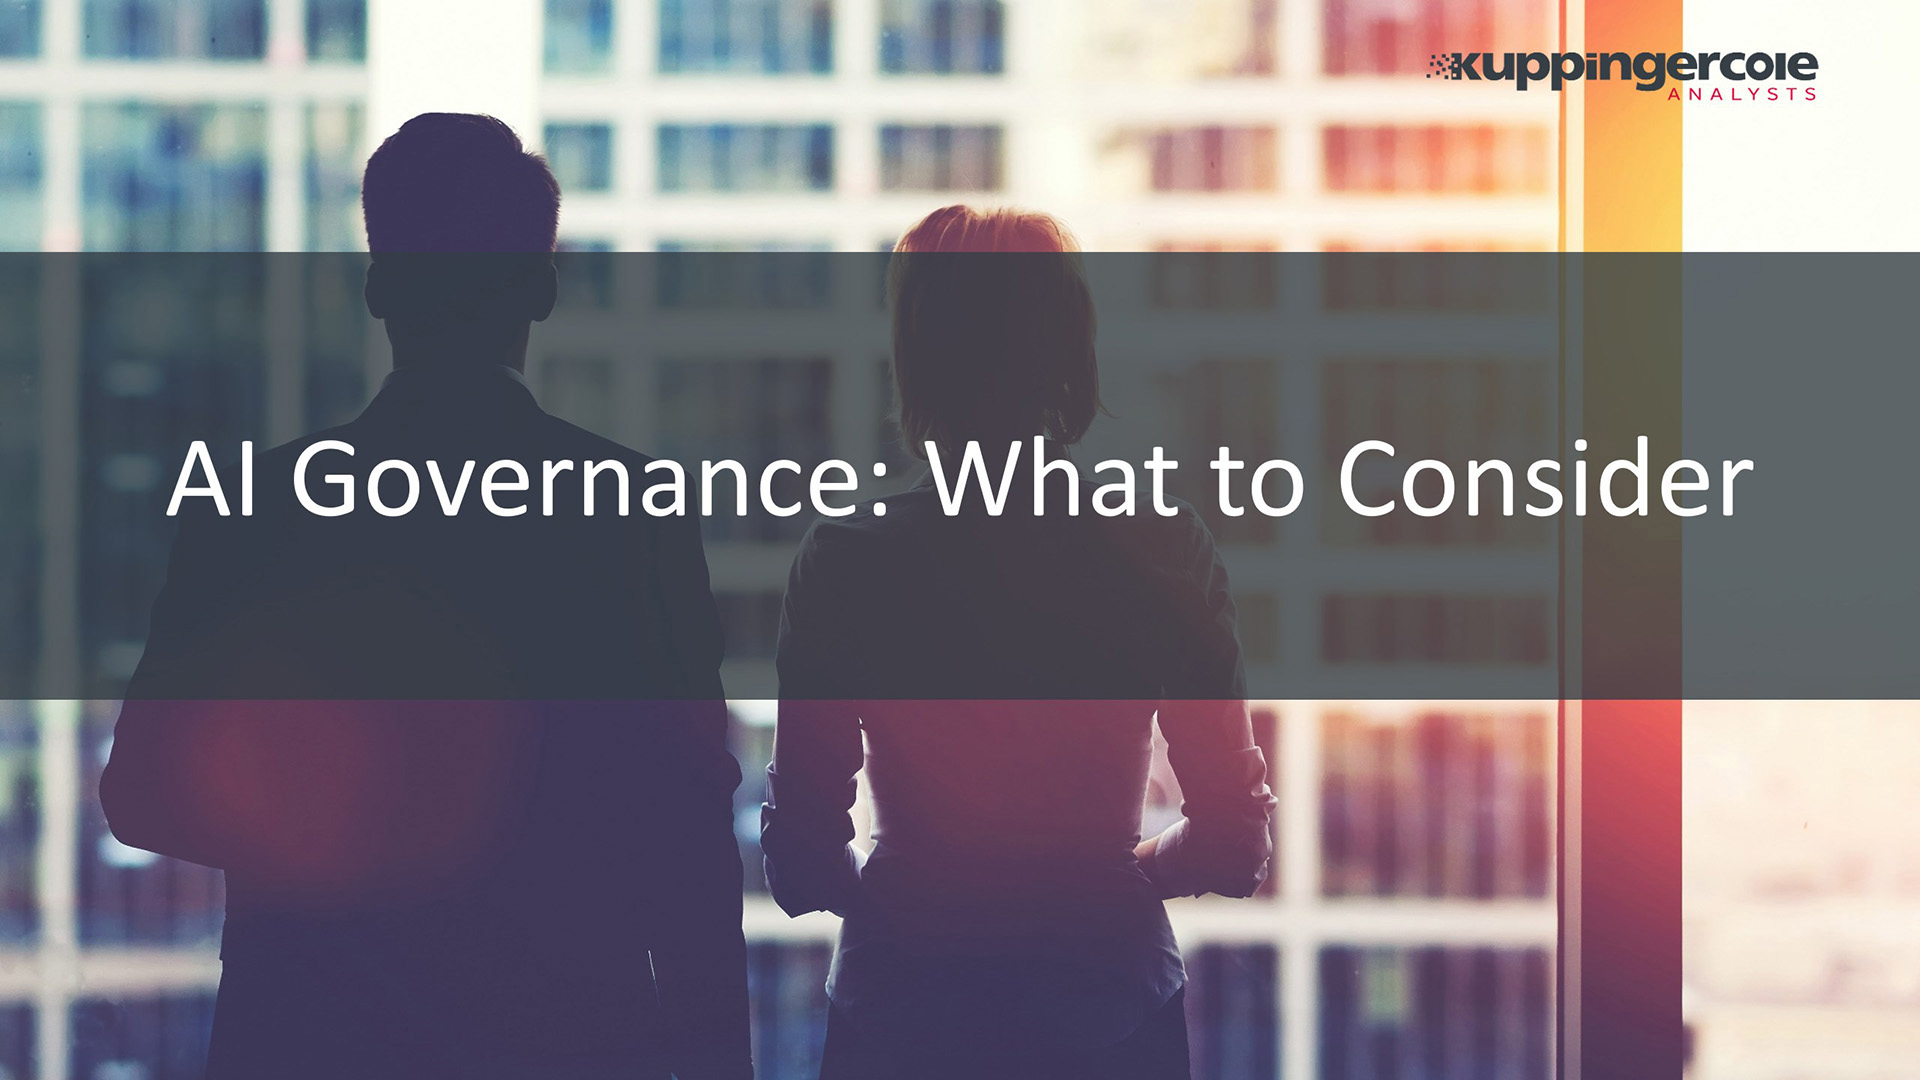 AI Governance: What to Consider